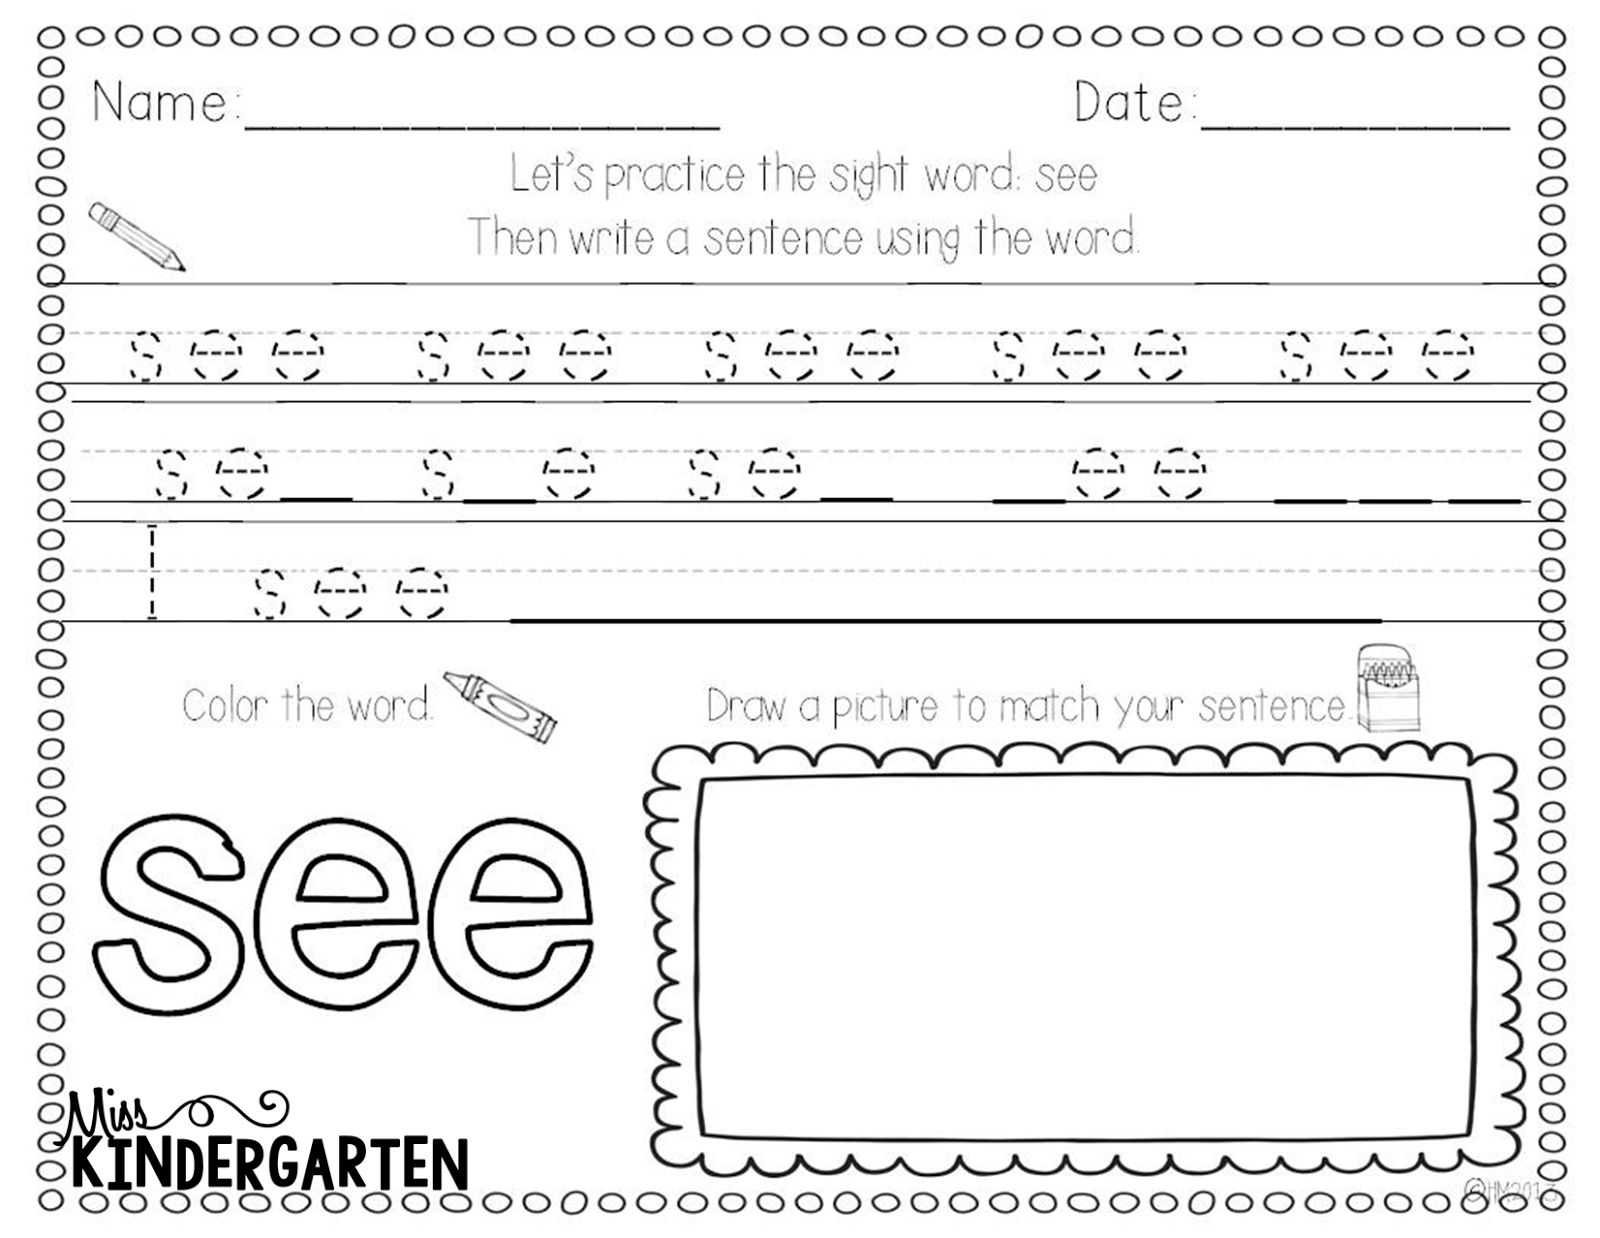 Free Worksheet Free Printable Worksheets For Kindergarten Sight Words sight word practice miss kindergarten httpwww teacherspayteachers comproductsight word